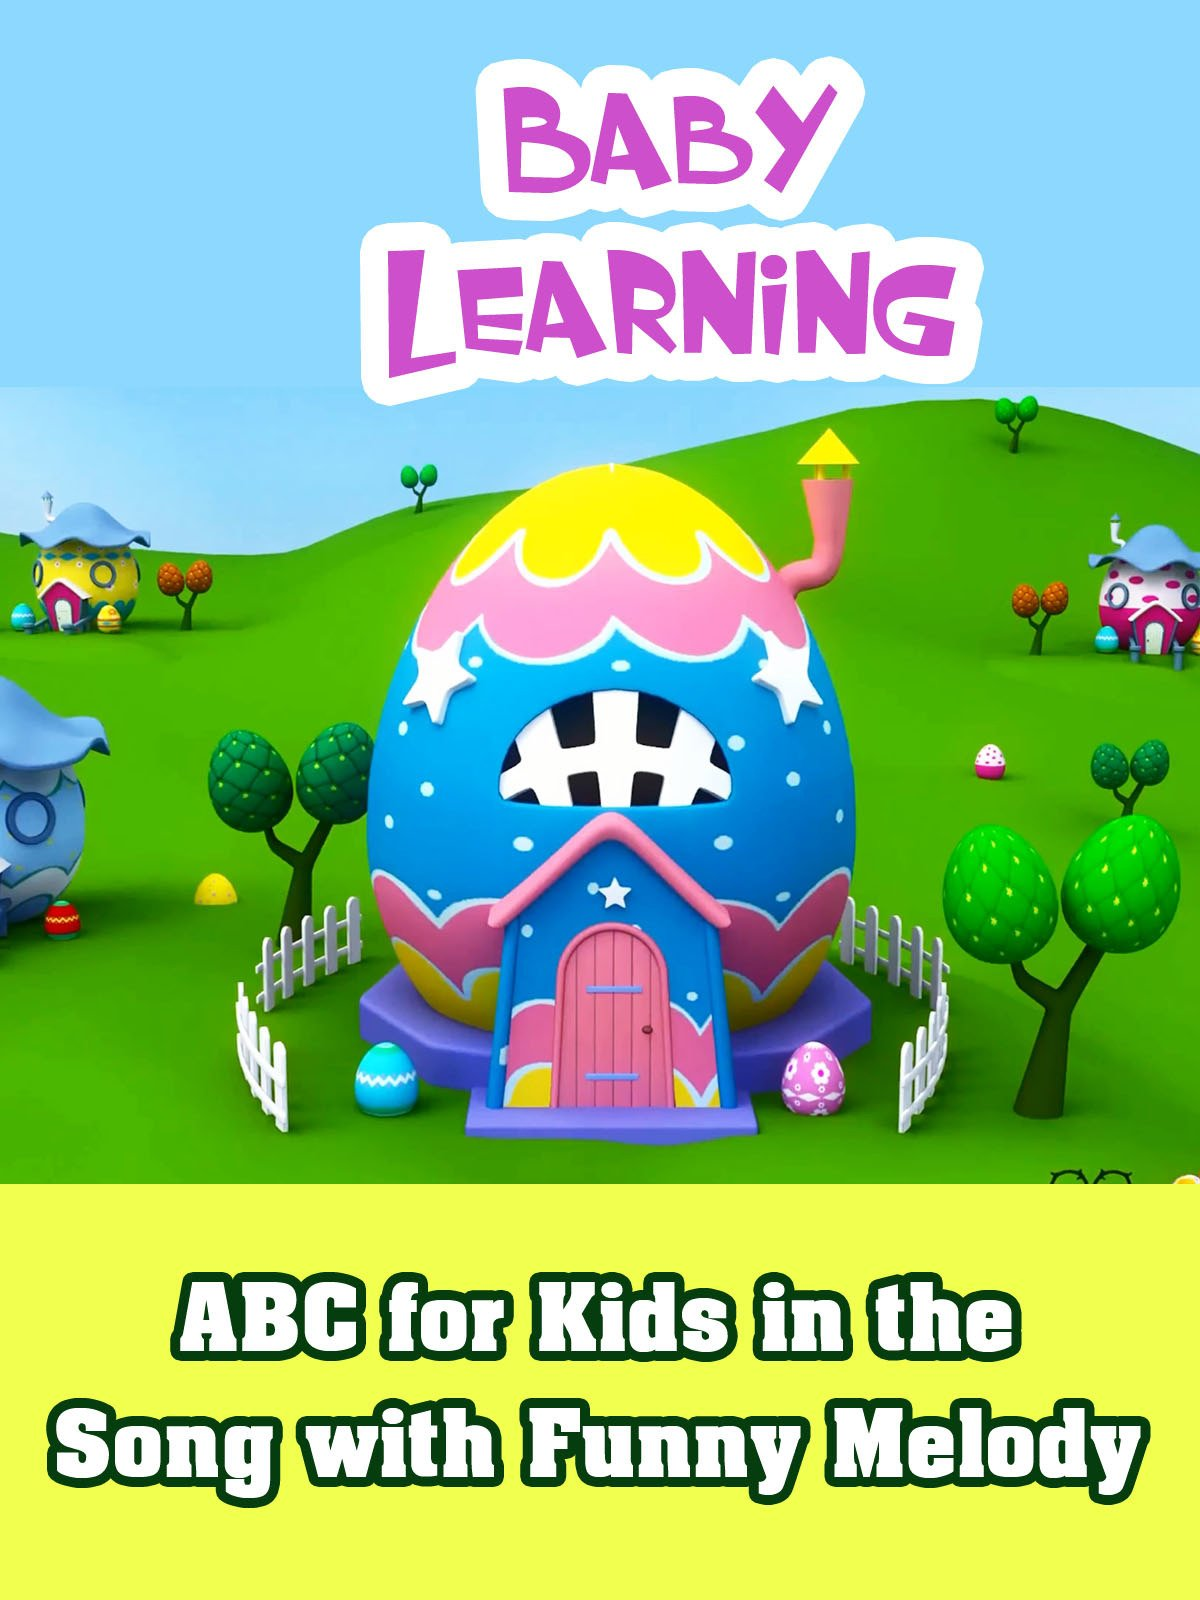 ABC for Kids in the Song with Funny Melody